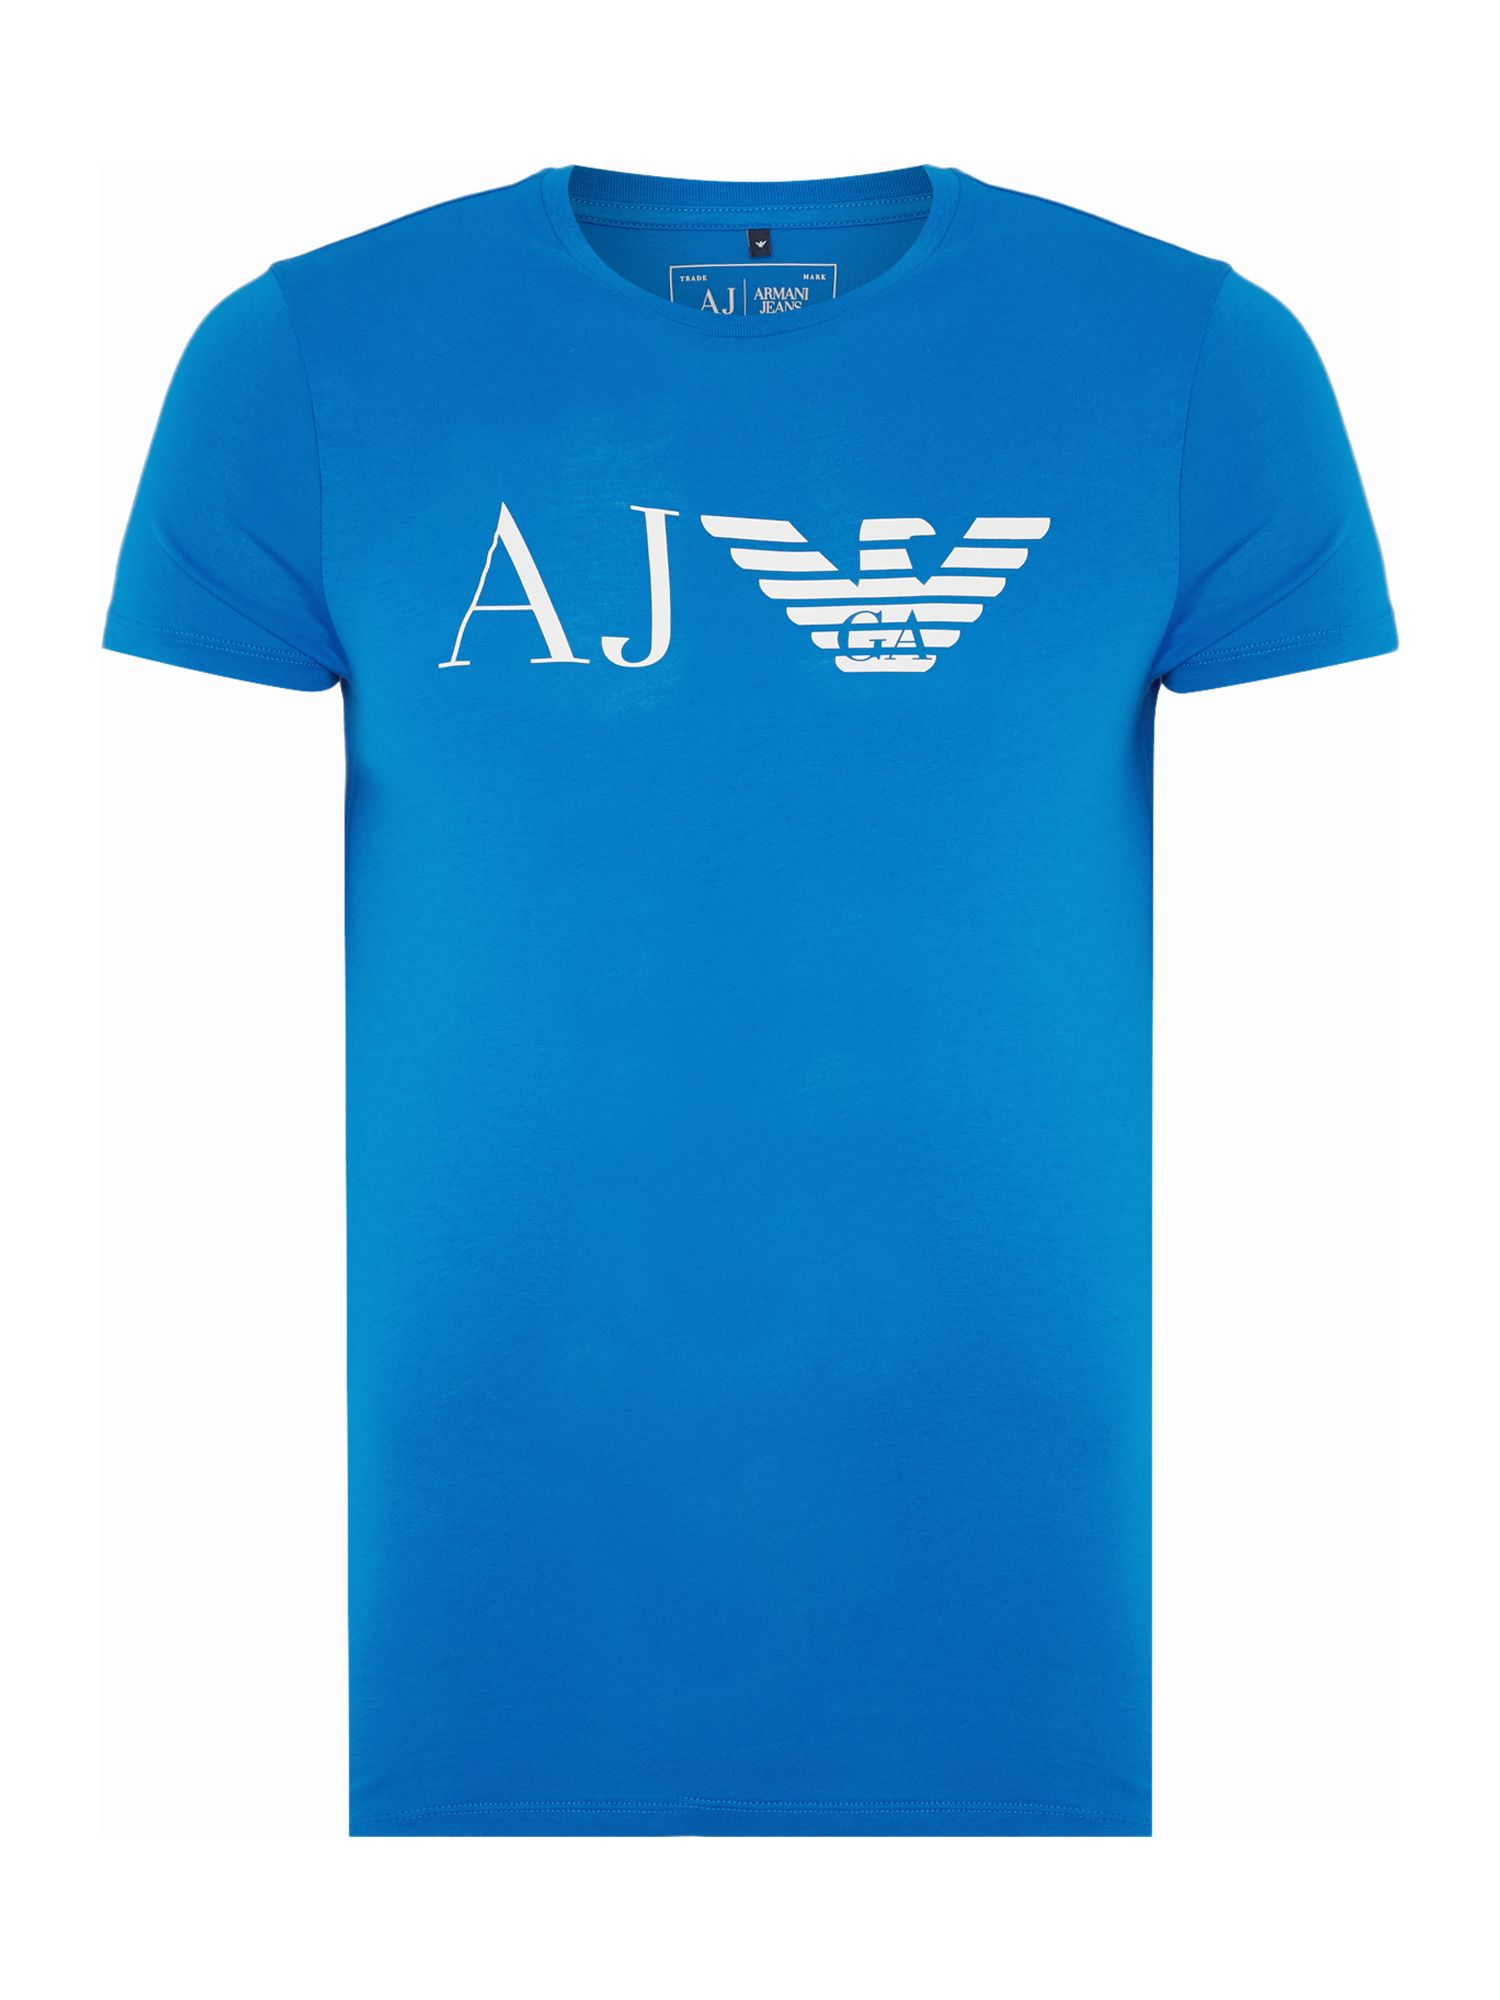 Mens Armani Jeans Regular fit AJ eagle logo printed t shirt Bright Blue